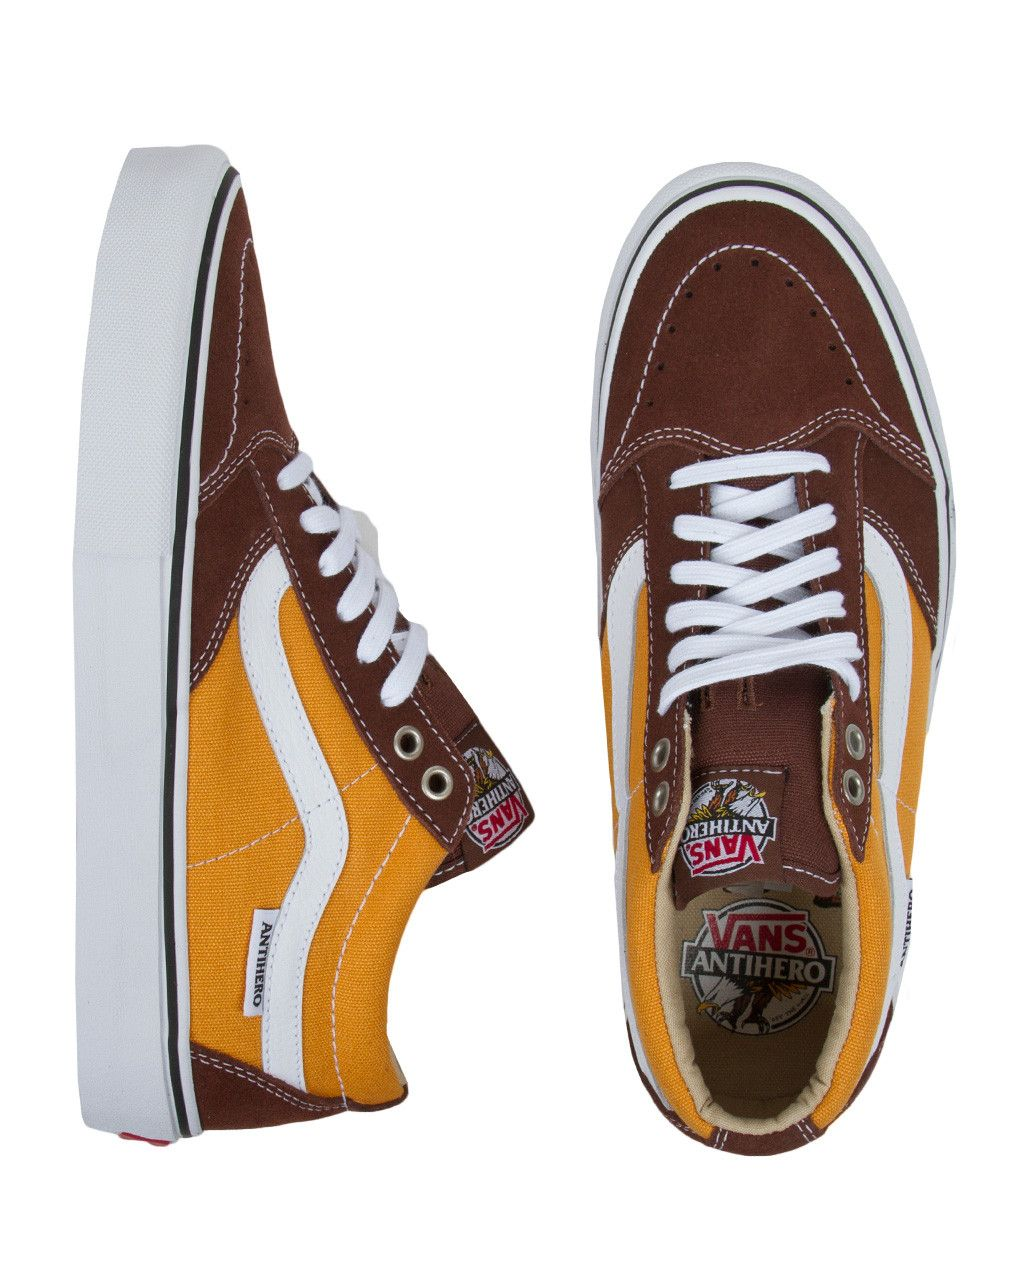 8e4ebb07a7 Vans TNT SG Shoes - Anti Hero Collaboration